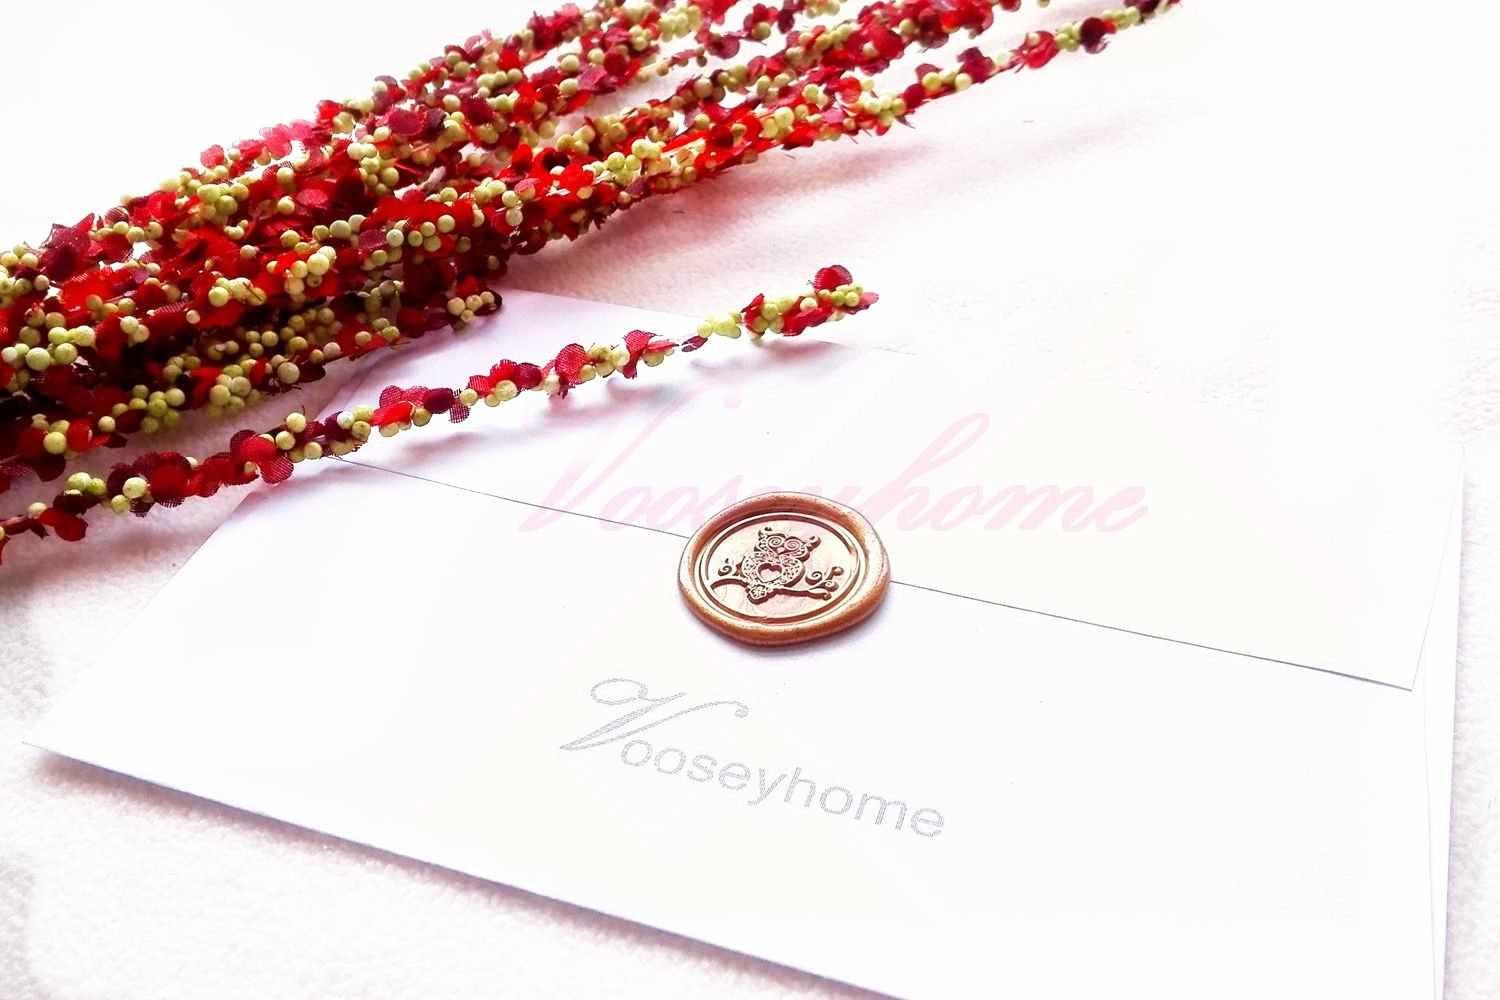 Vooseyhome The Cute Owl Wax Seal Stamp with Rosewood Handle - Ideal for Decorating Gift Packing, Envelopes, Parcels, Cards, Letters, Invitations, Signature and Everything You Like! by VOOSEYHOME (Image #5)